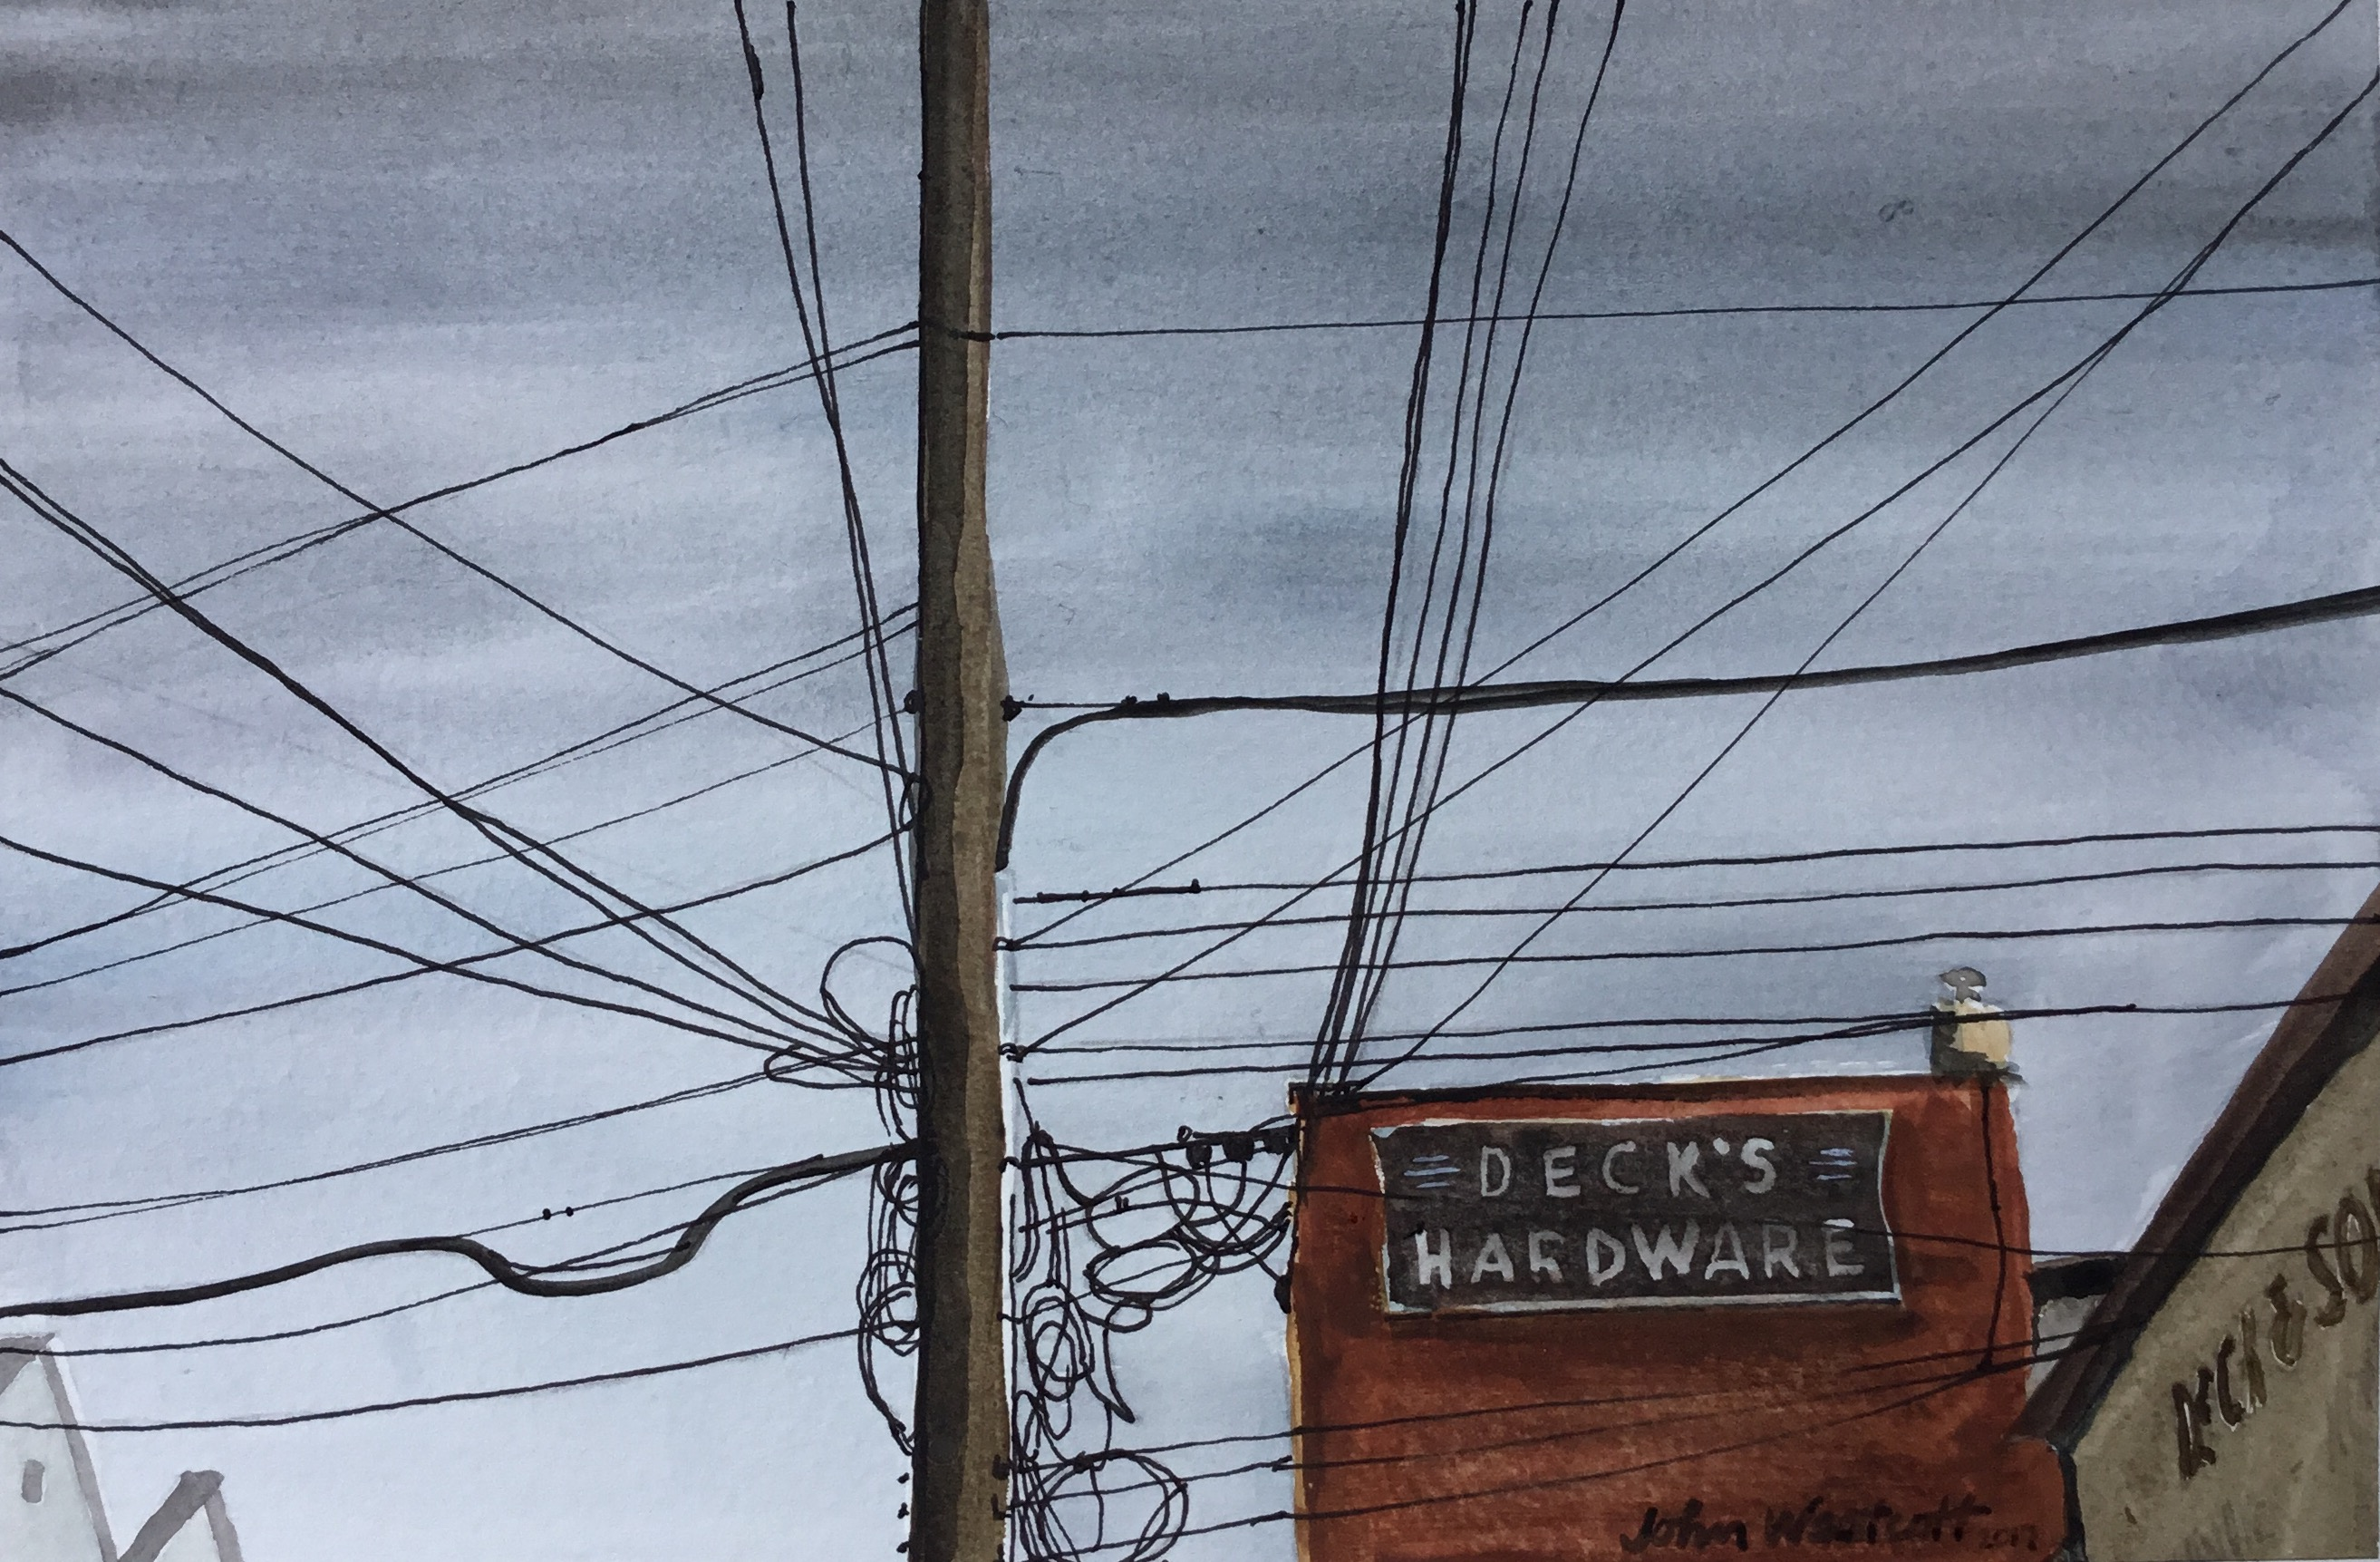 Tangle of Powerlines at Decks Hardware